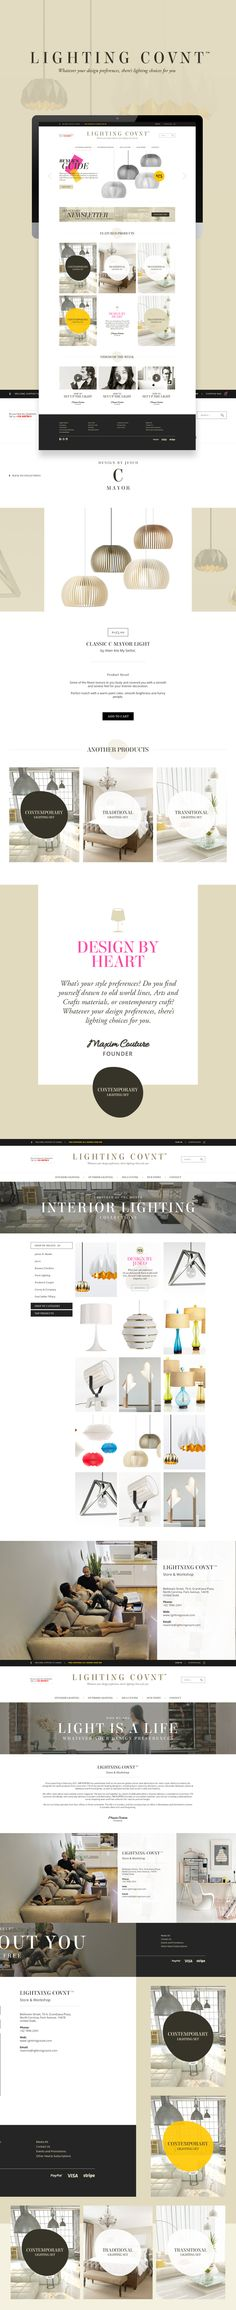 Lighting Covnt™ - Web Interface by Firman Suci Ananda, via Behance